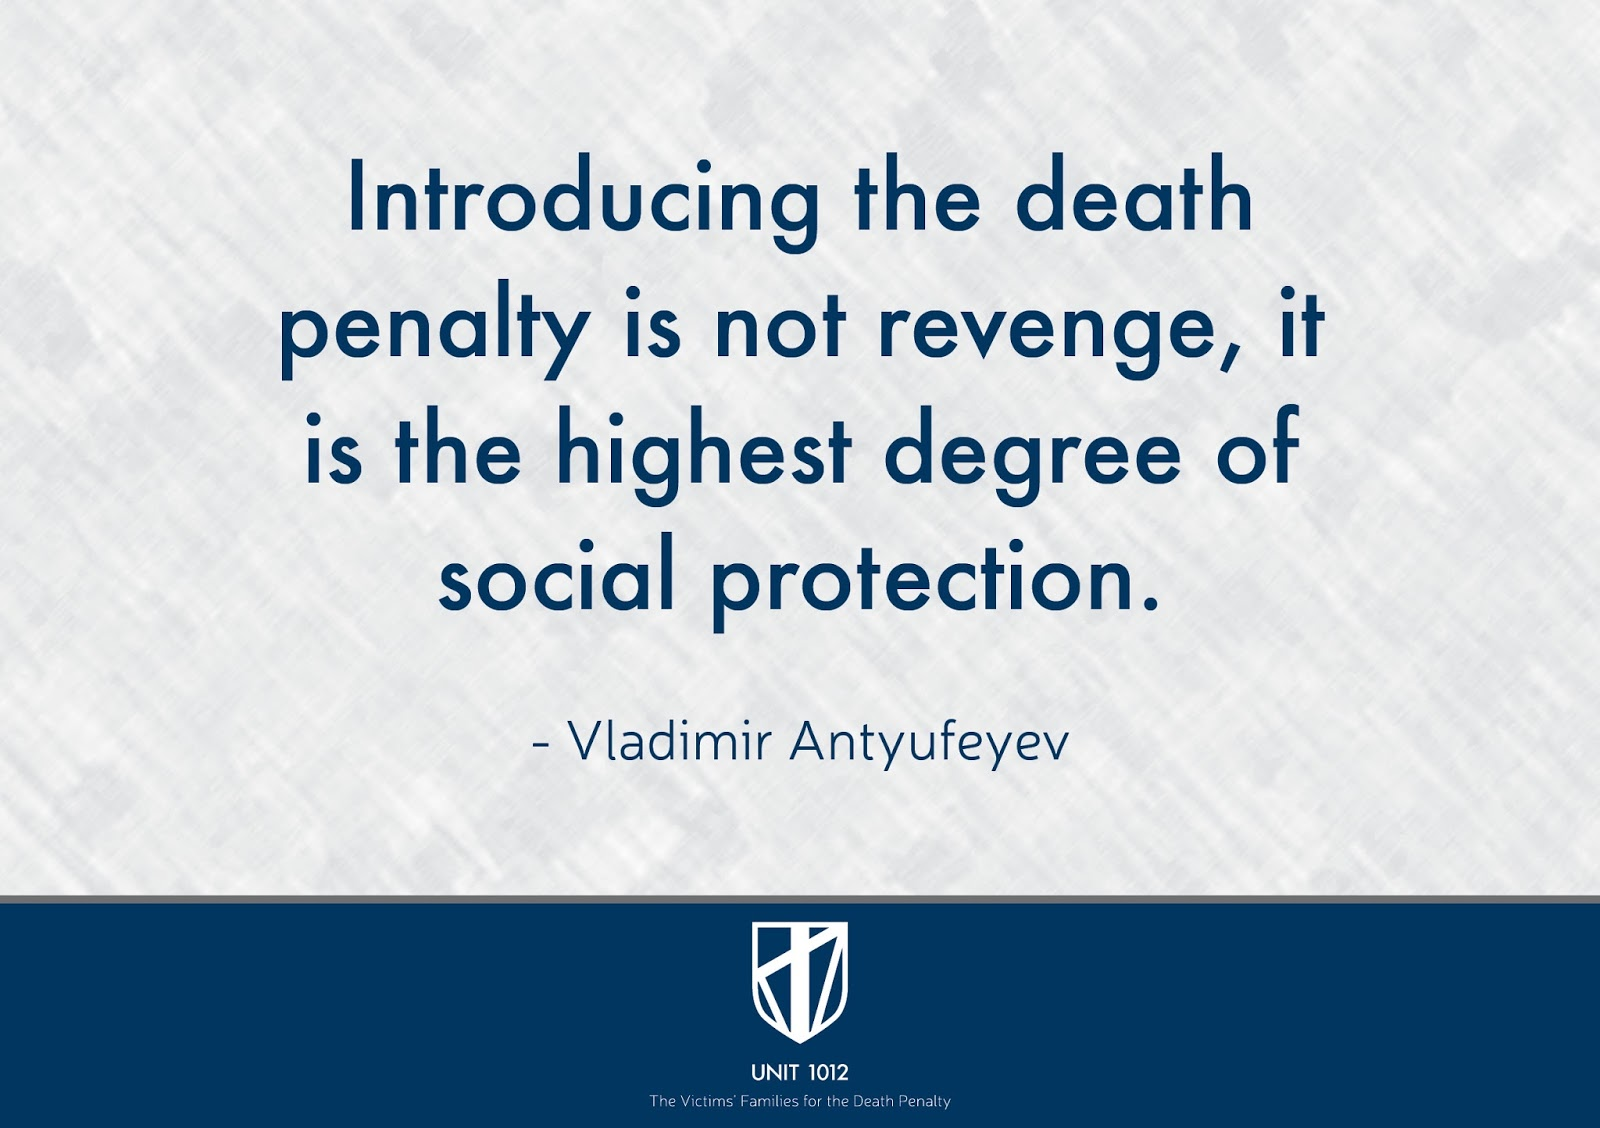 in support of the death penalty Americans value the death penalty - even if it causes the condemned needless pain and suffering - over the 8th amendment's mandate against cruel and unusual.